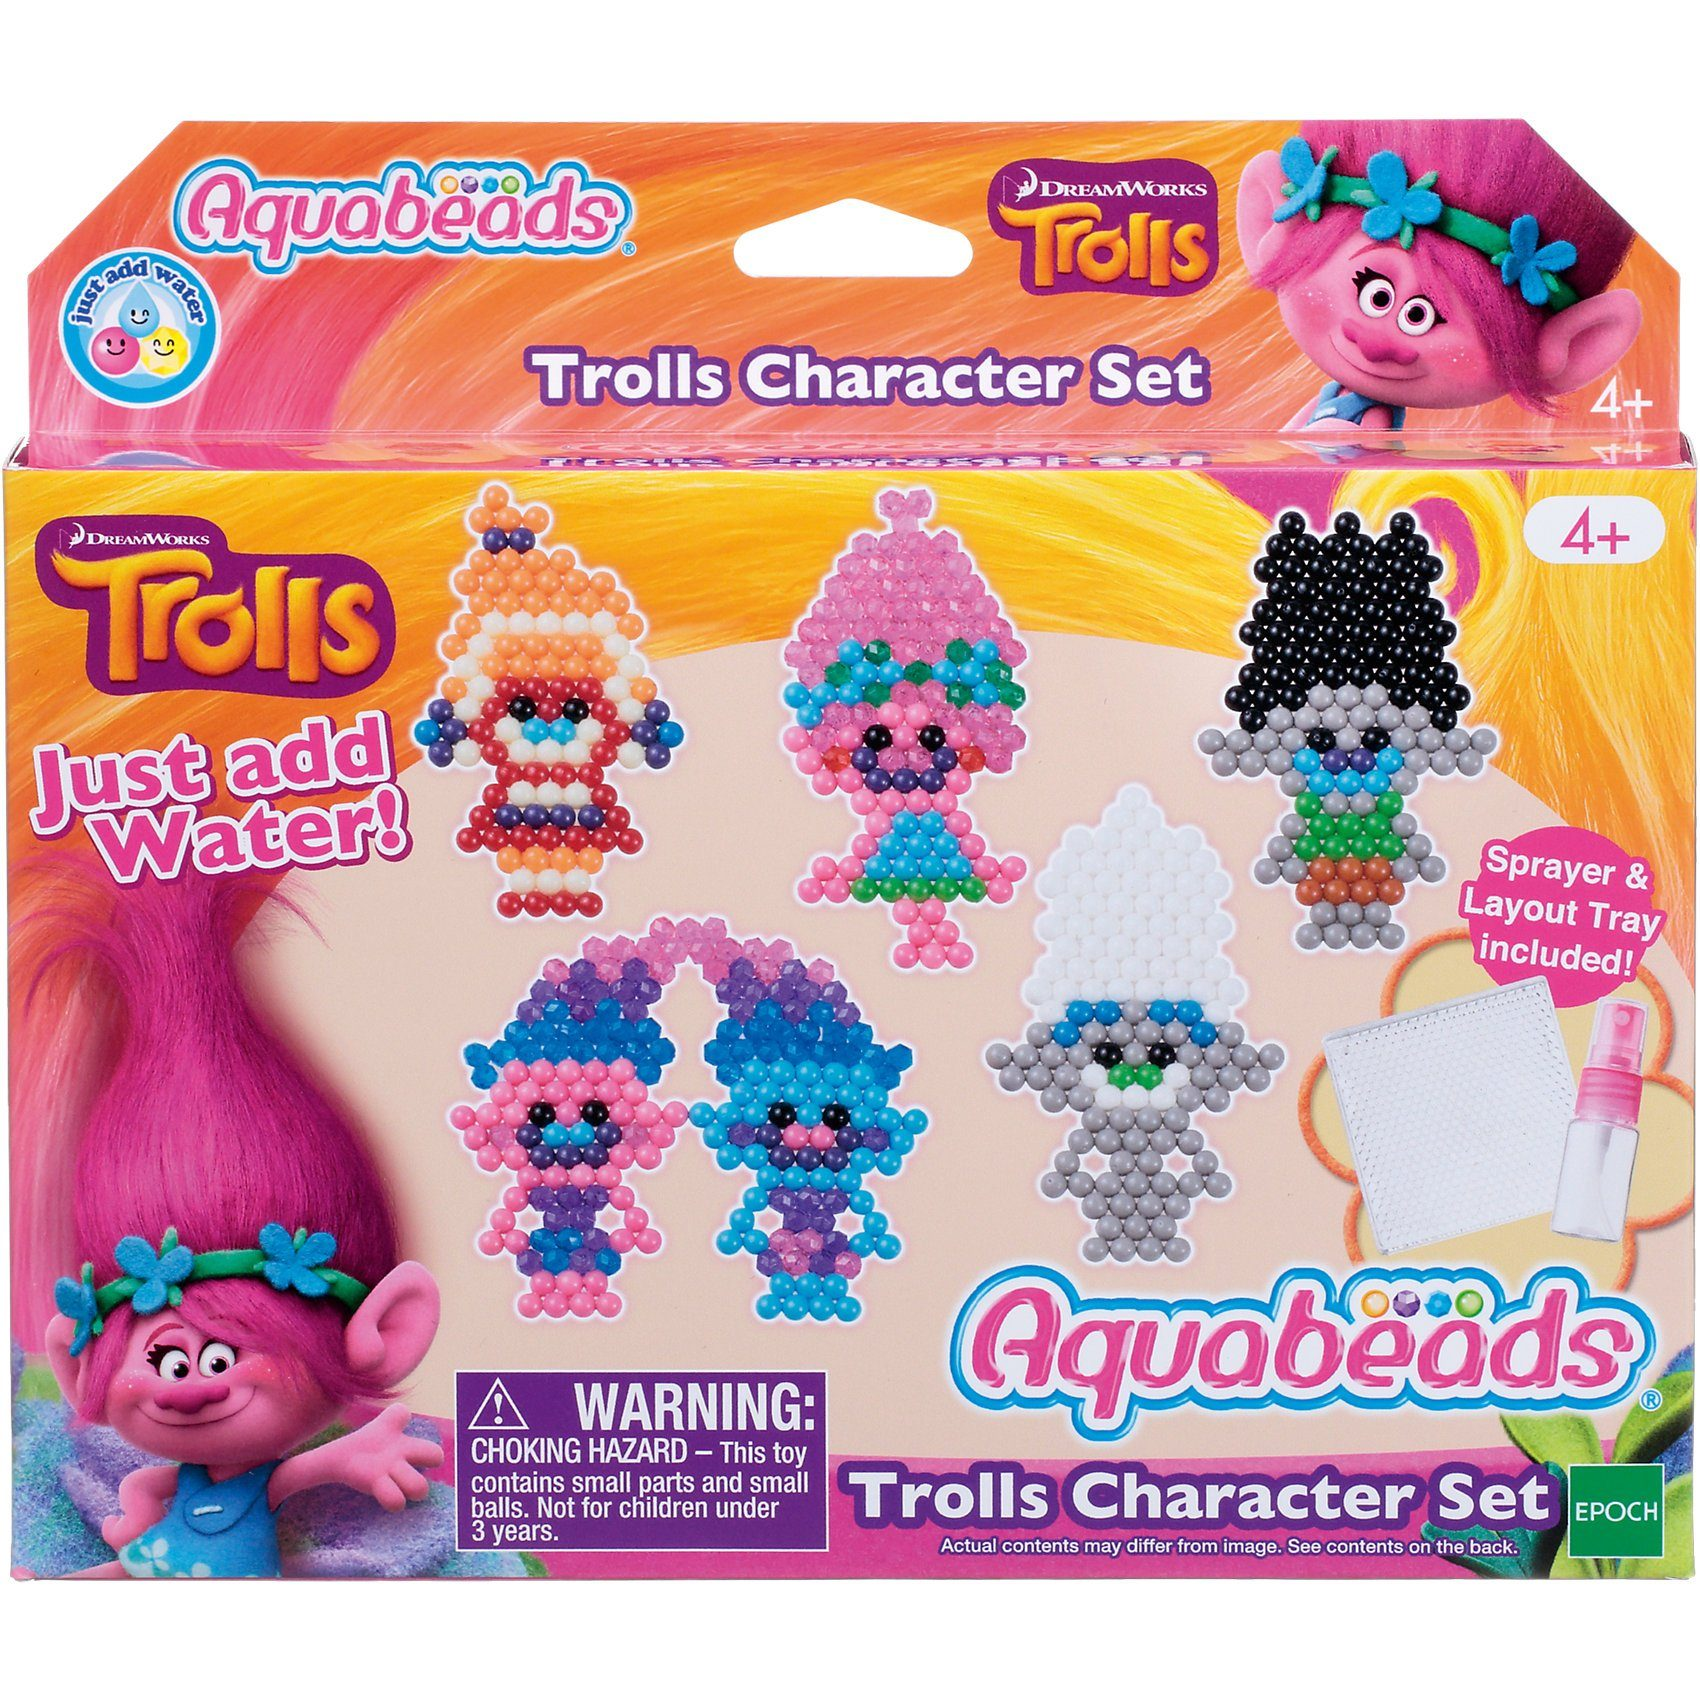 EPOCH Traumwiesen Aquabeads Trolls Figurenset